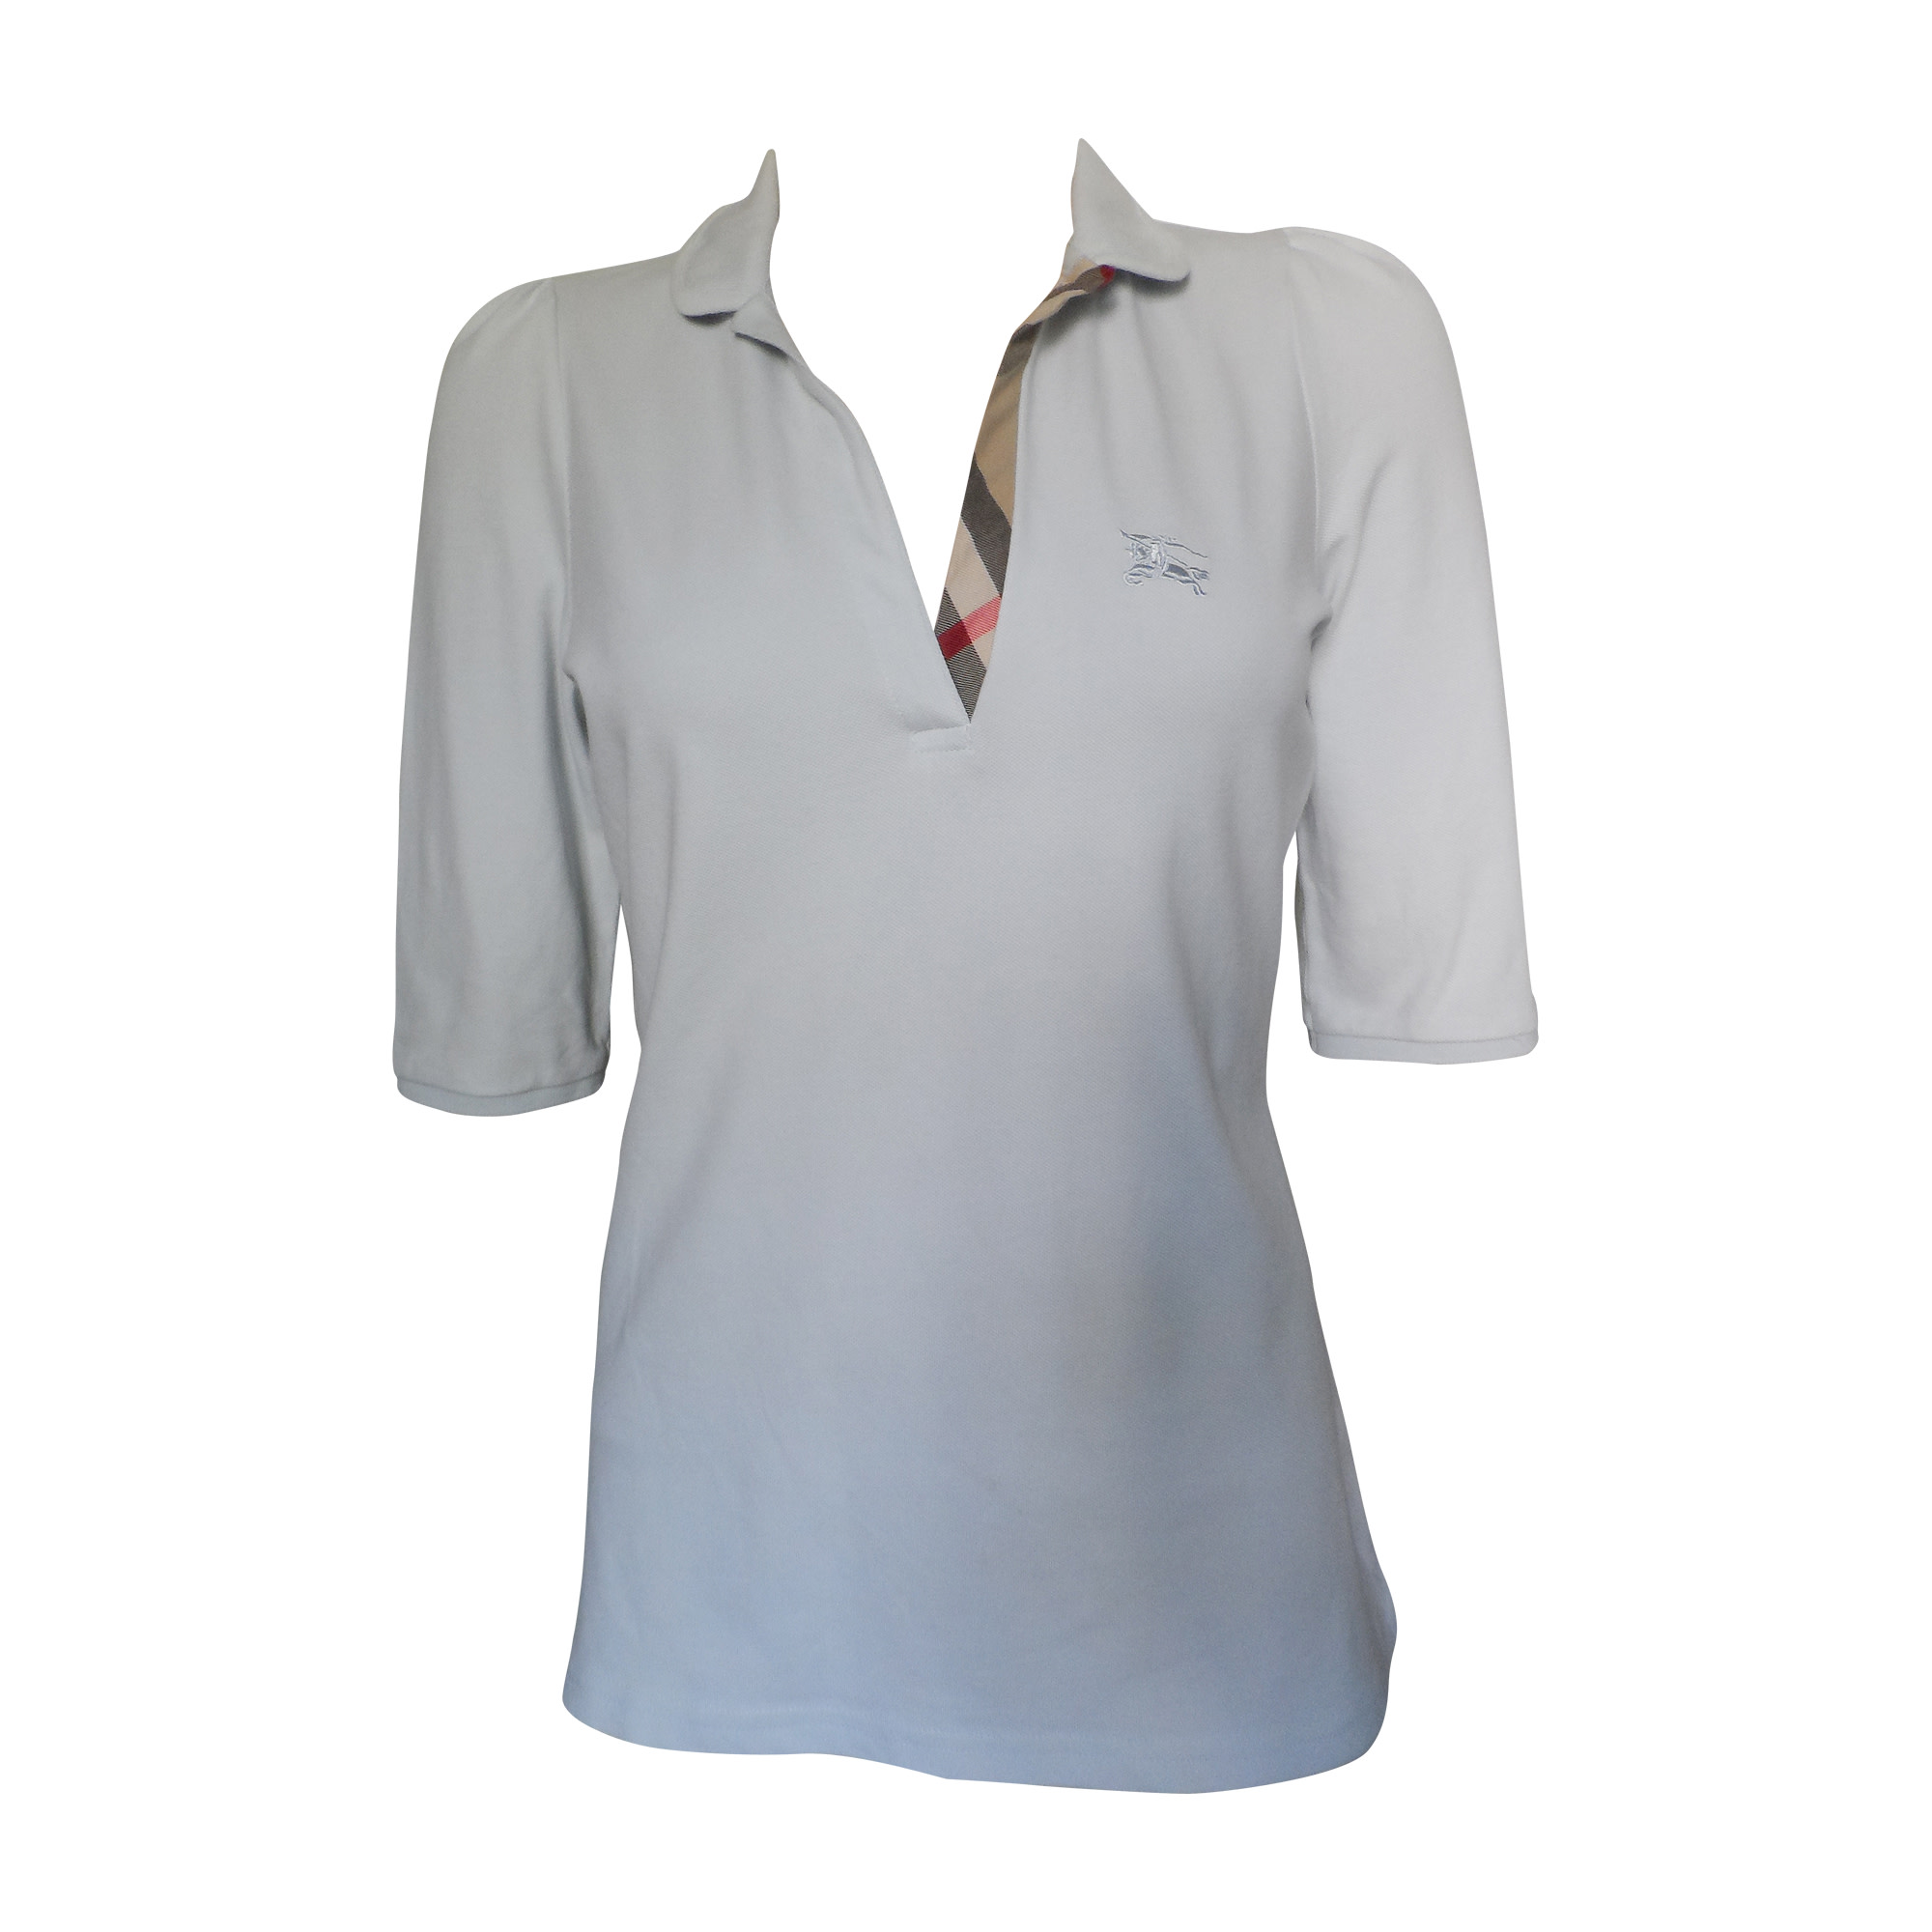 2810b62afb20 Polo BURBERRY 40 (L, T3) gris - 4936619